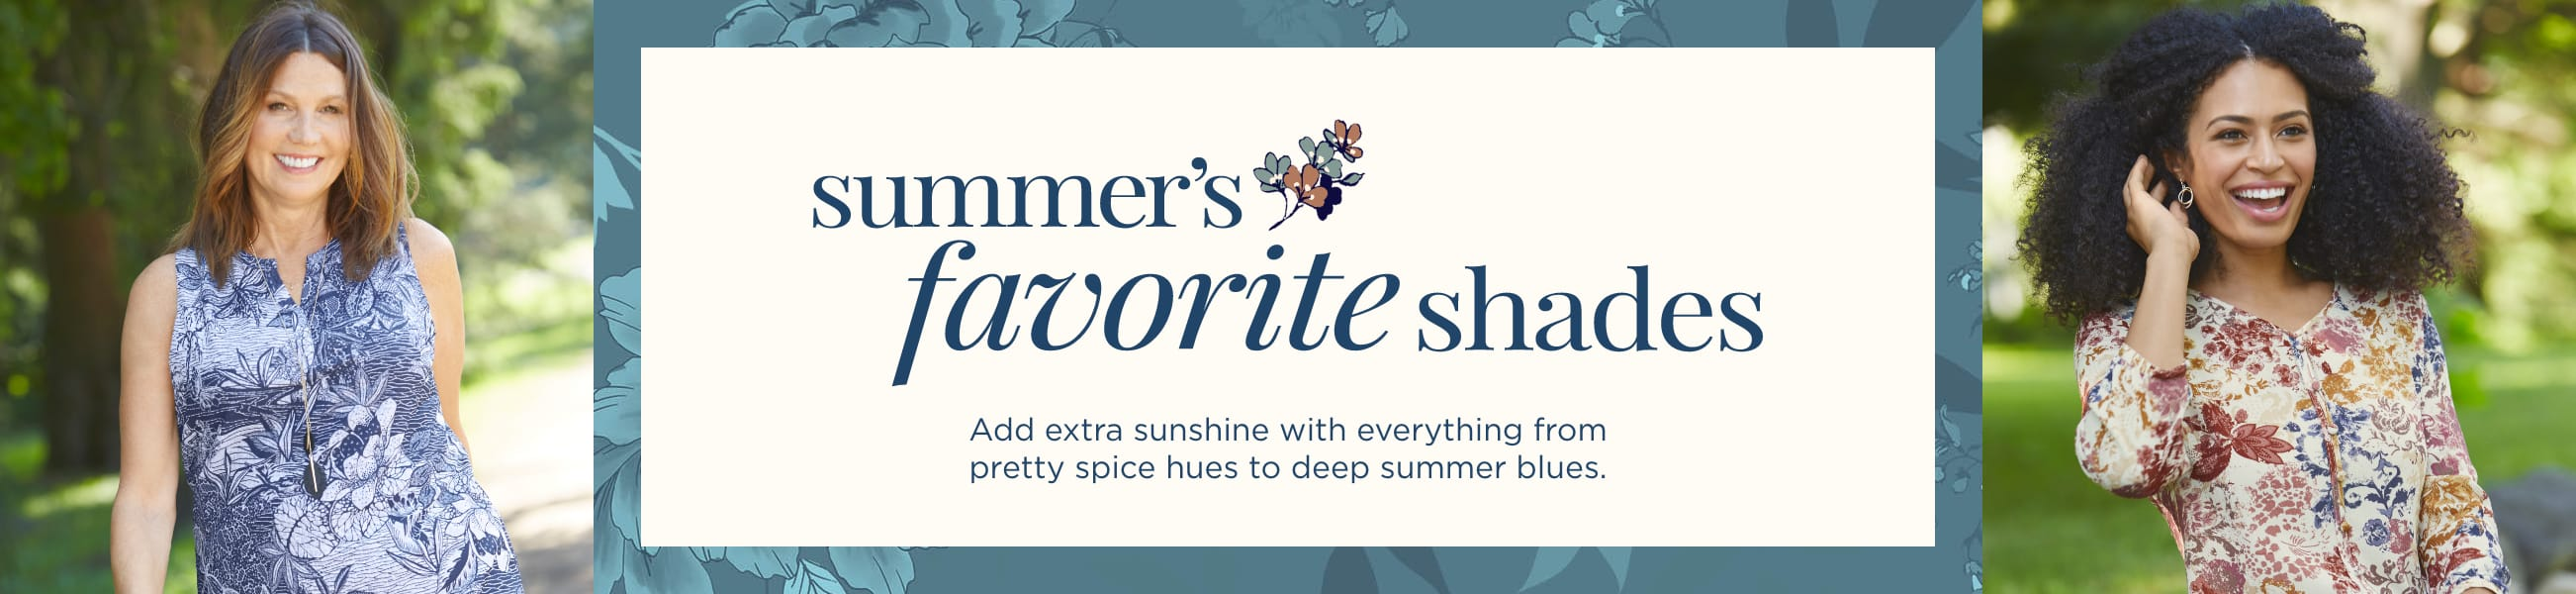 Summer's Favorite Shades. Add extra sunshine with everything from pretty spice hues to deep summer blues.